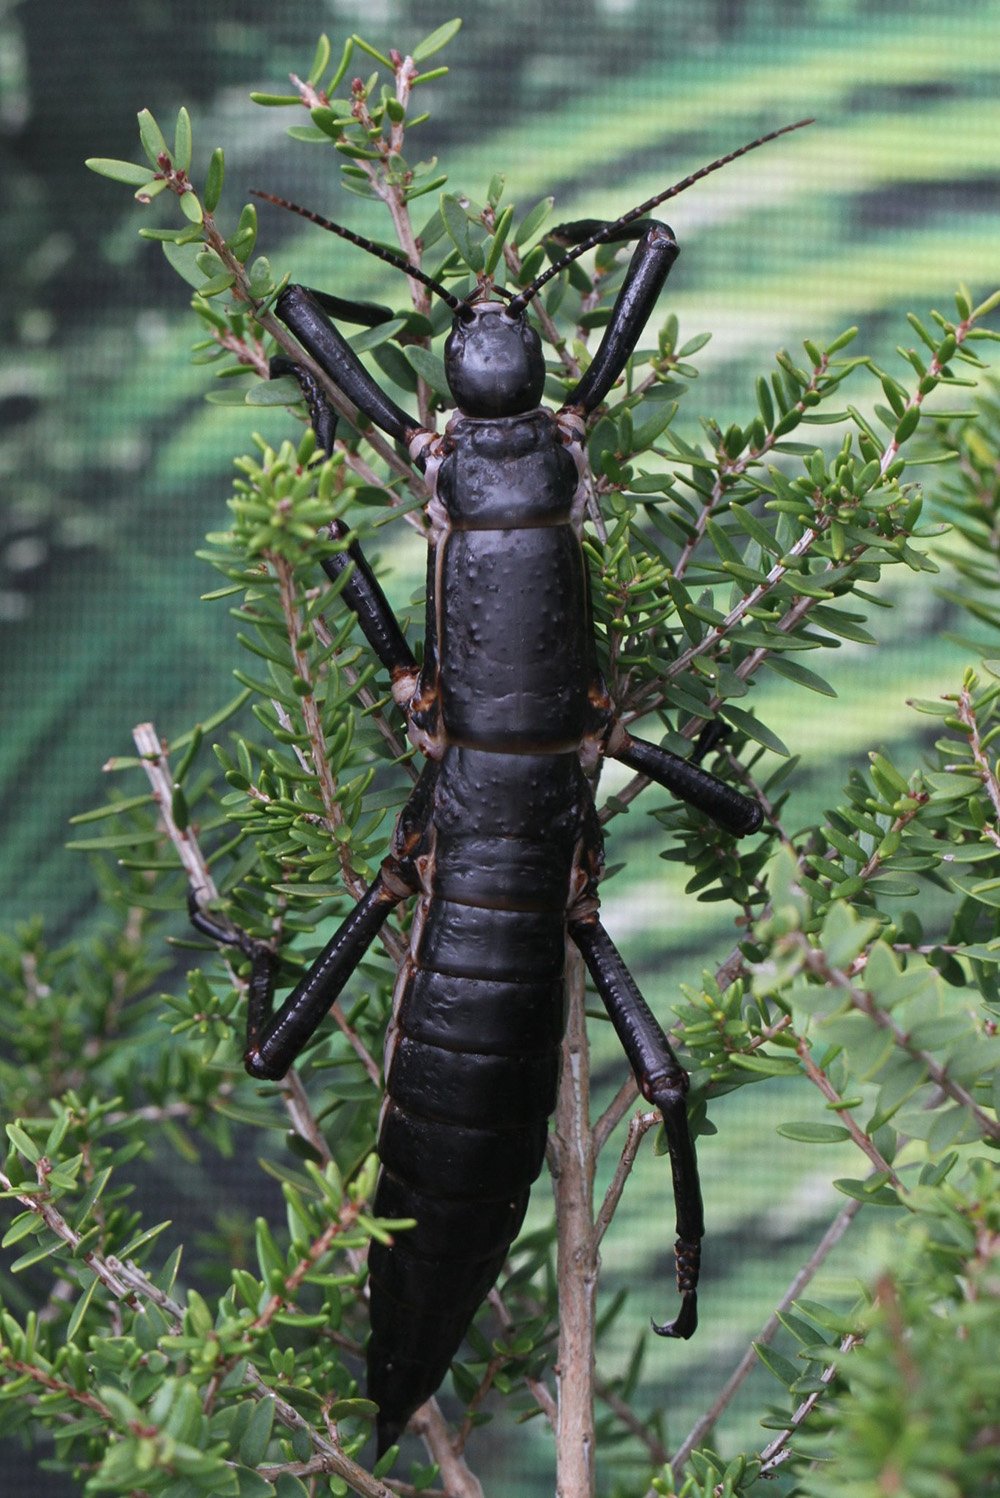 island-conservation-lord-howe-stick-insect-tree-lobster